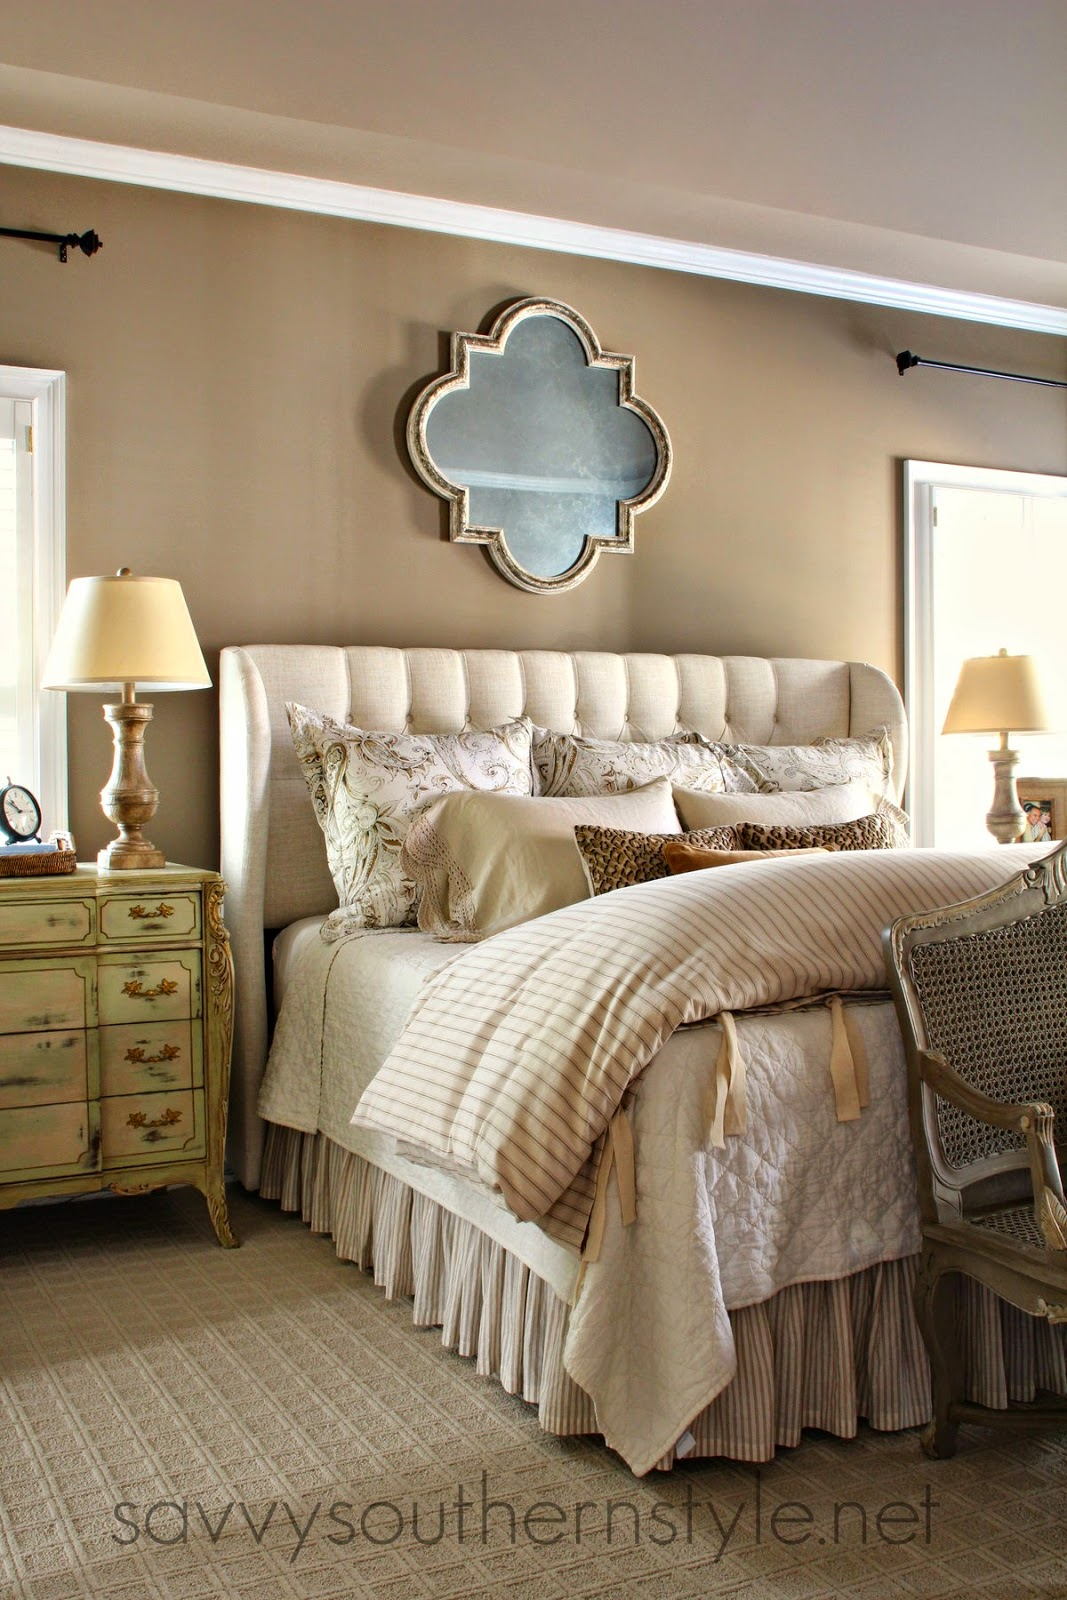 Savvy southern style master bedroom source list for Southern style bedroom